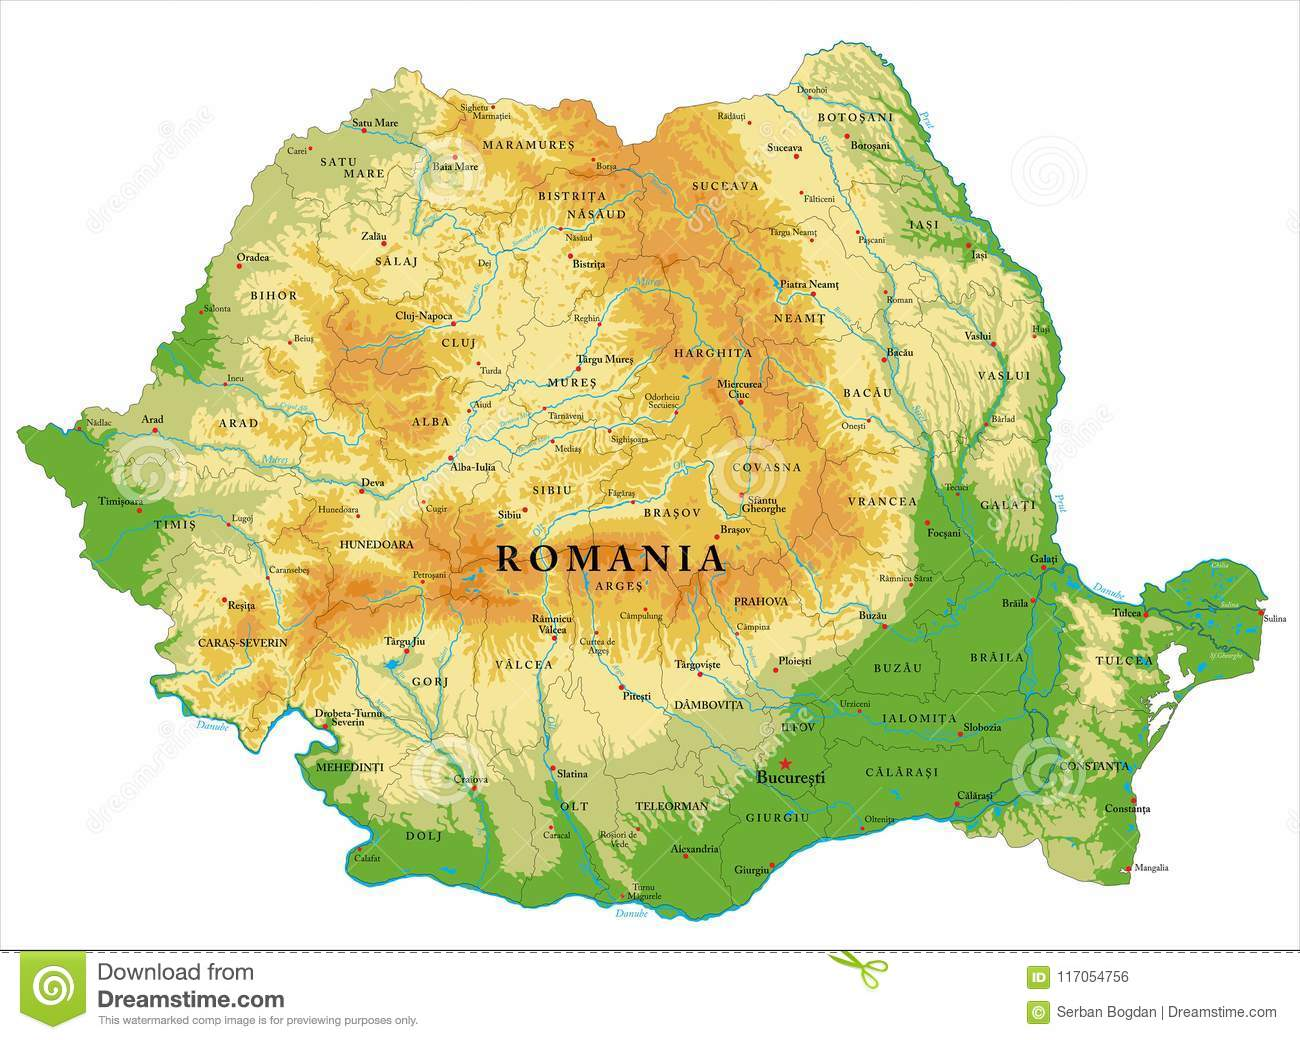 Cartina Romania Regioni.Carta In Rilievo Della Romania Illustrazione Vettoriale Illustrazione Di Collina Bucarest 117054756